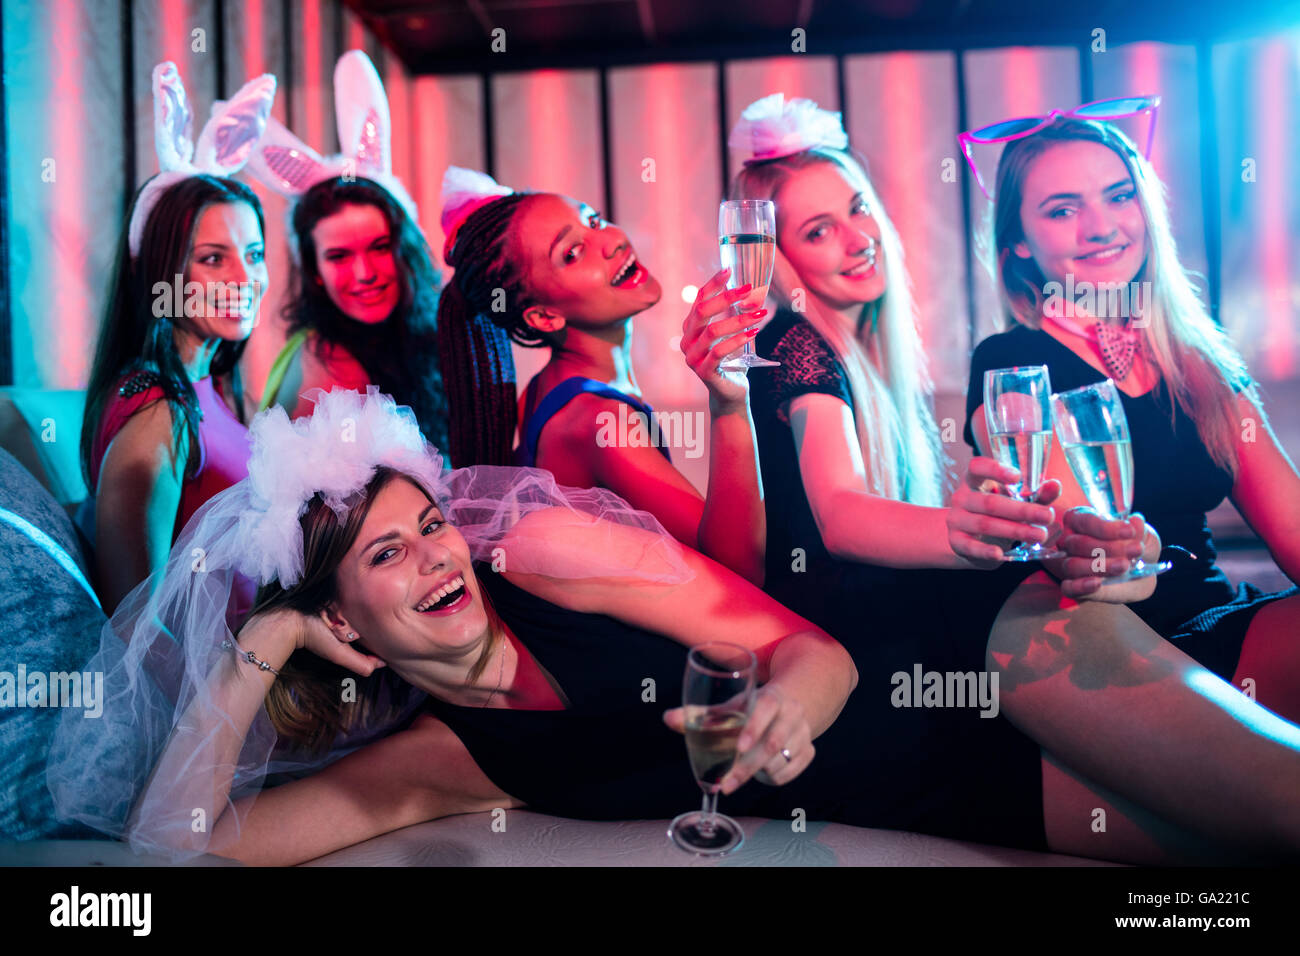 Group of women posing with glass of champagne - Stock Image